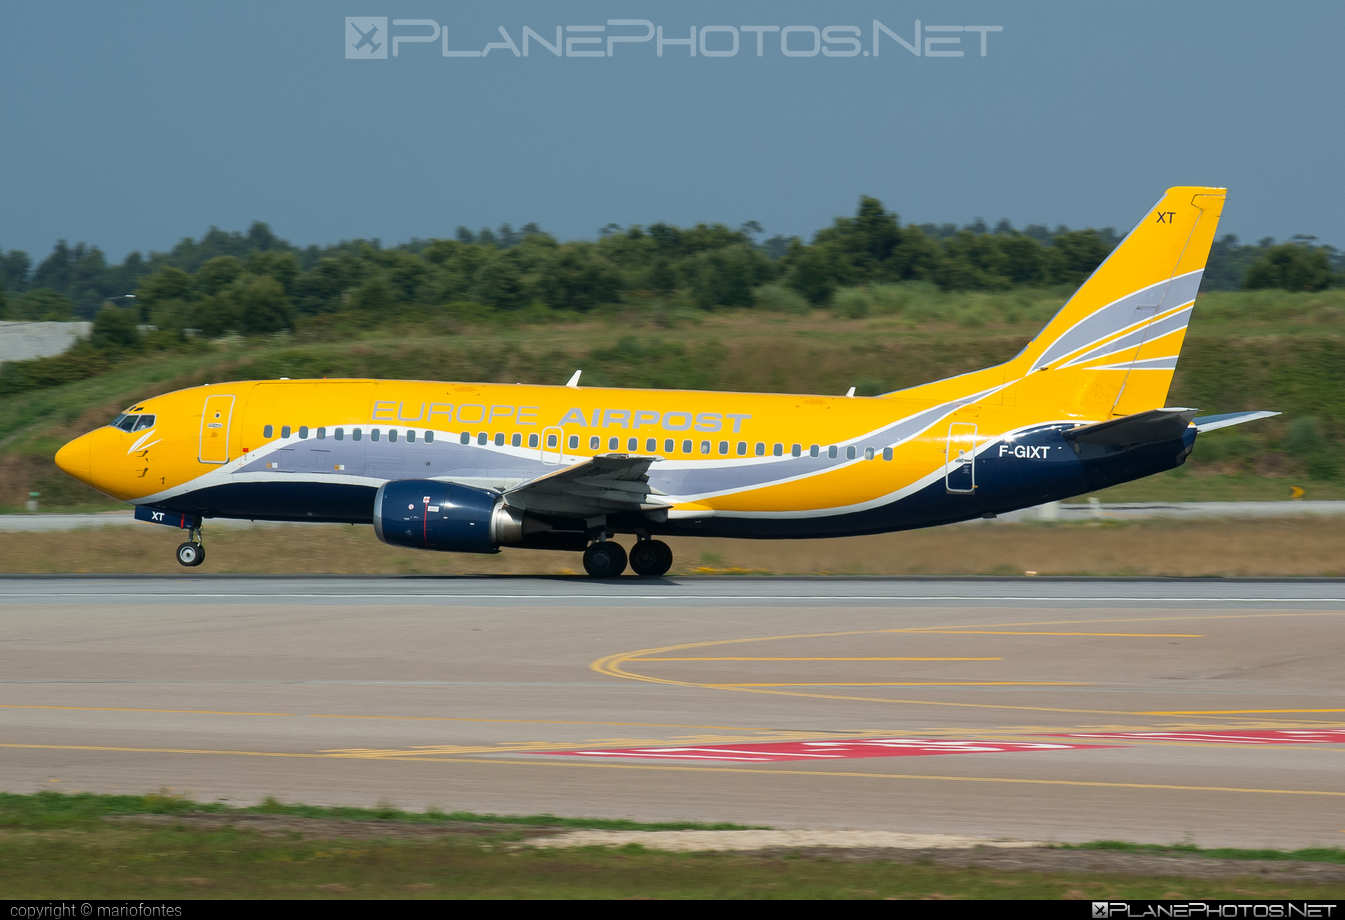 Boeing 737-300QC - F-GIXT operated by Europe Airpost #b737 #b737qc #boeing #boeing737